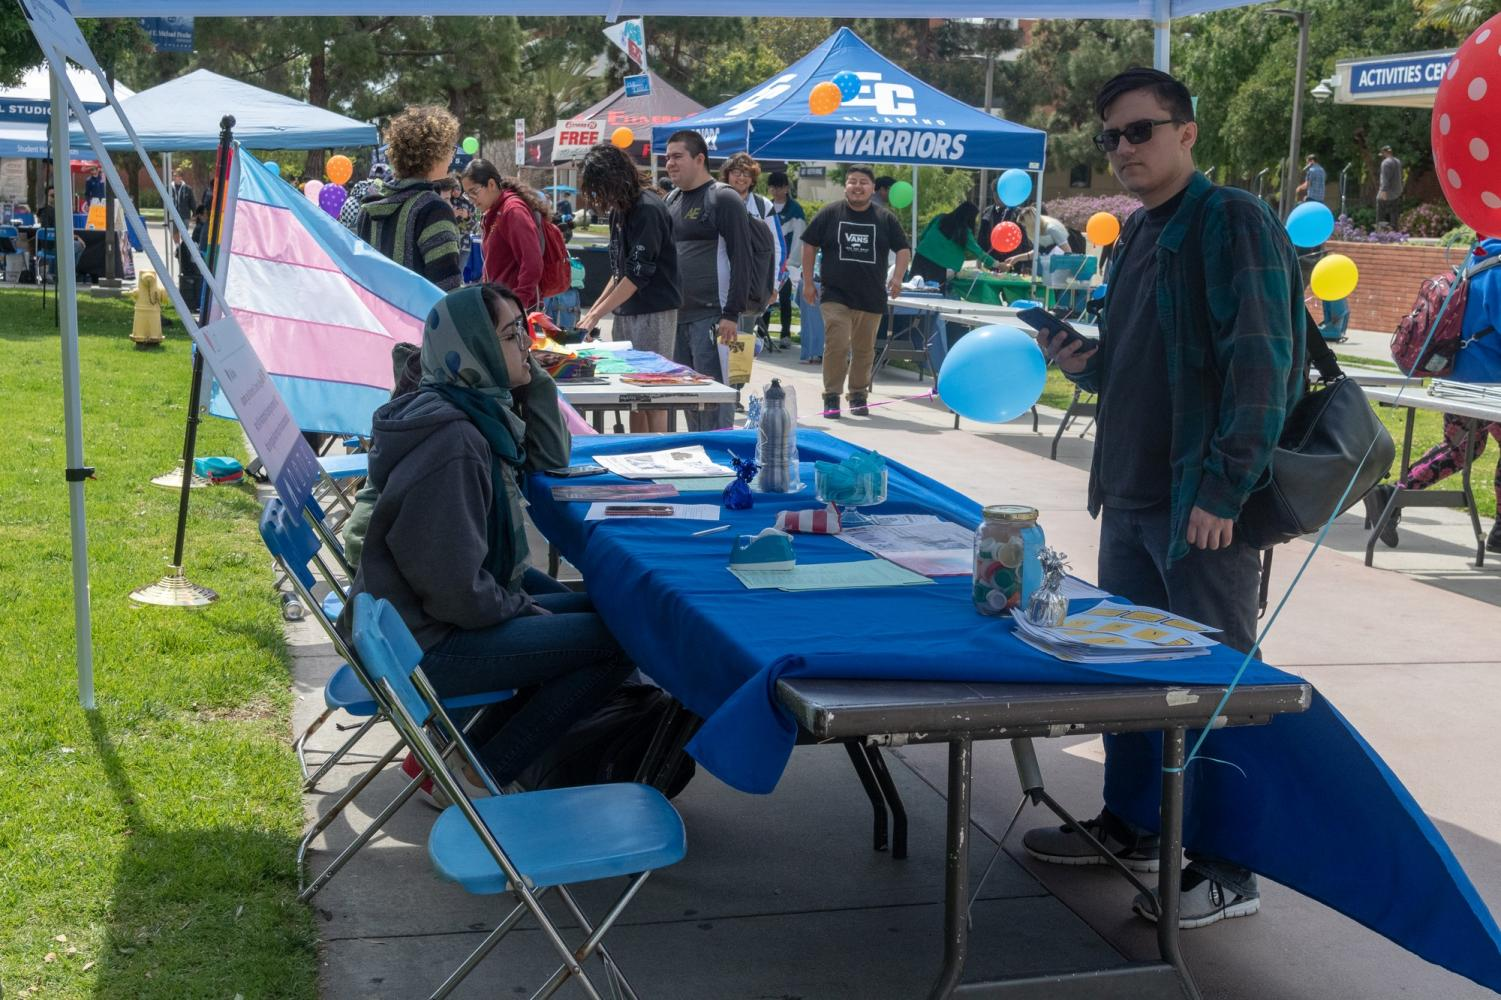 El Camino College's ASB Faire was held on the Library Lawn on Wednesday, April 3. The event looked to promote clubs and programs on campus as well as the benefits of the ASB sticker. Photo credit: Elena Perez